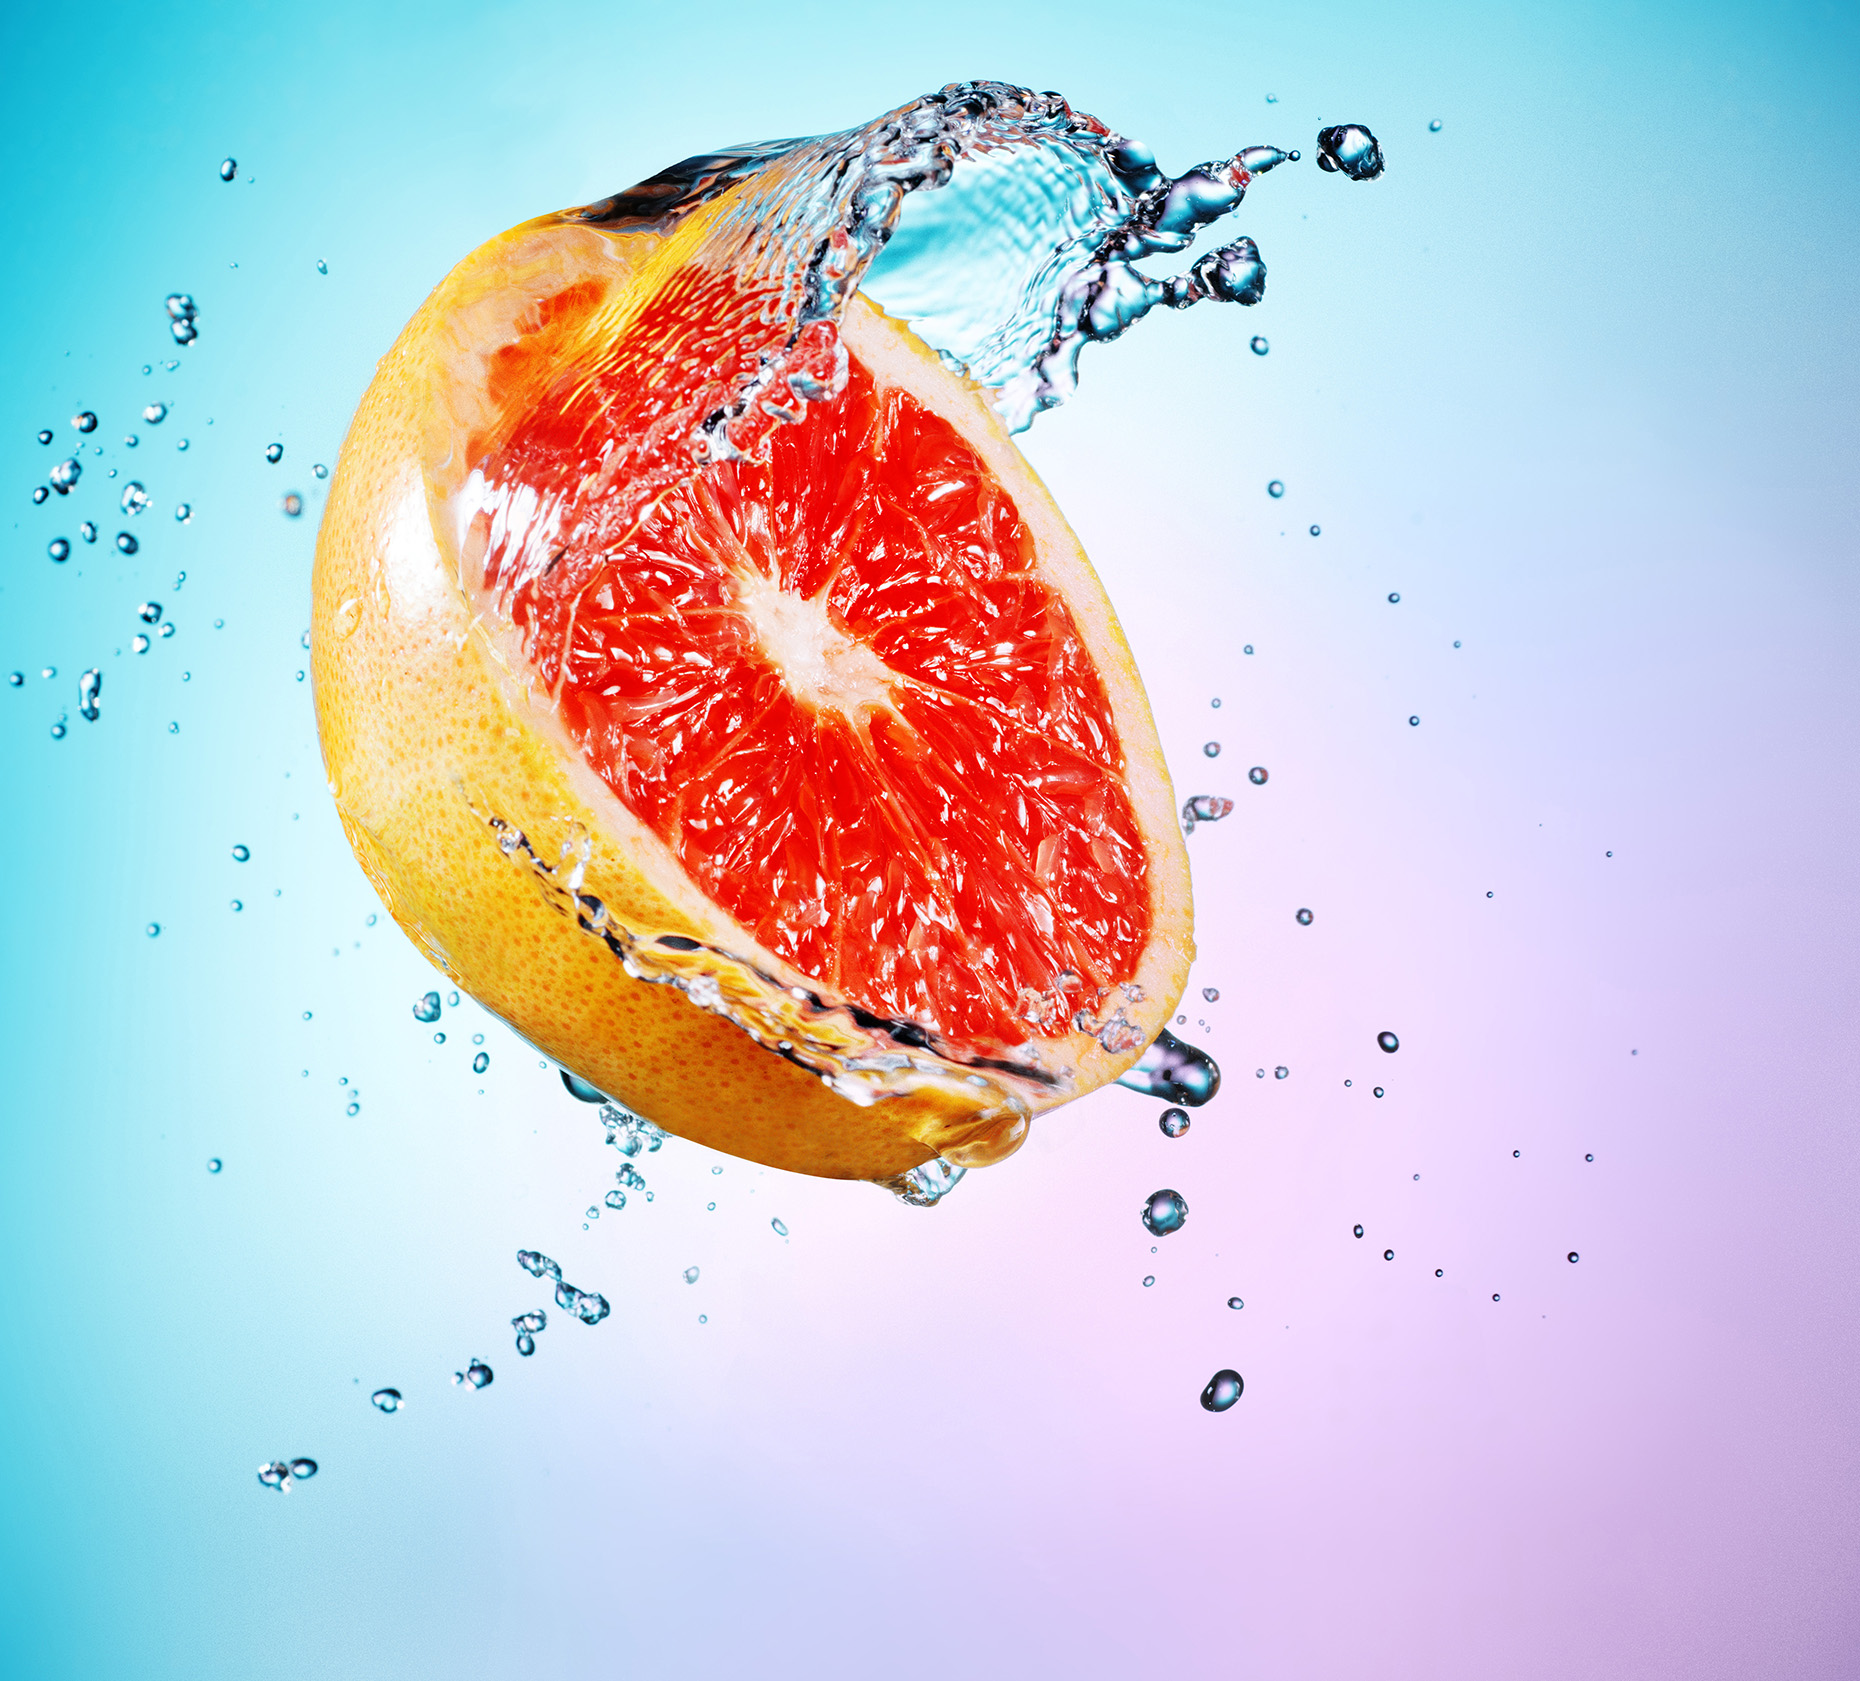 April-fruit-splashes-new-york-splash-photo-studio